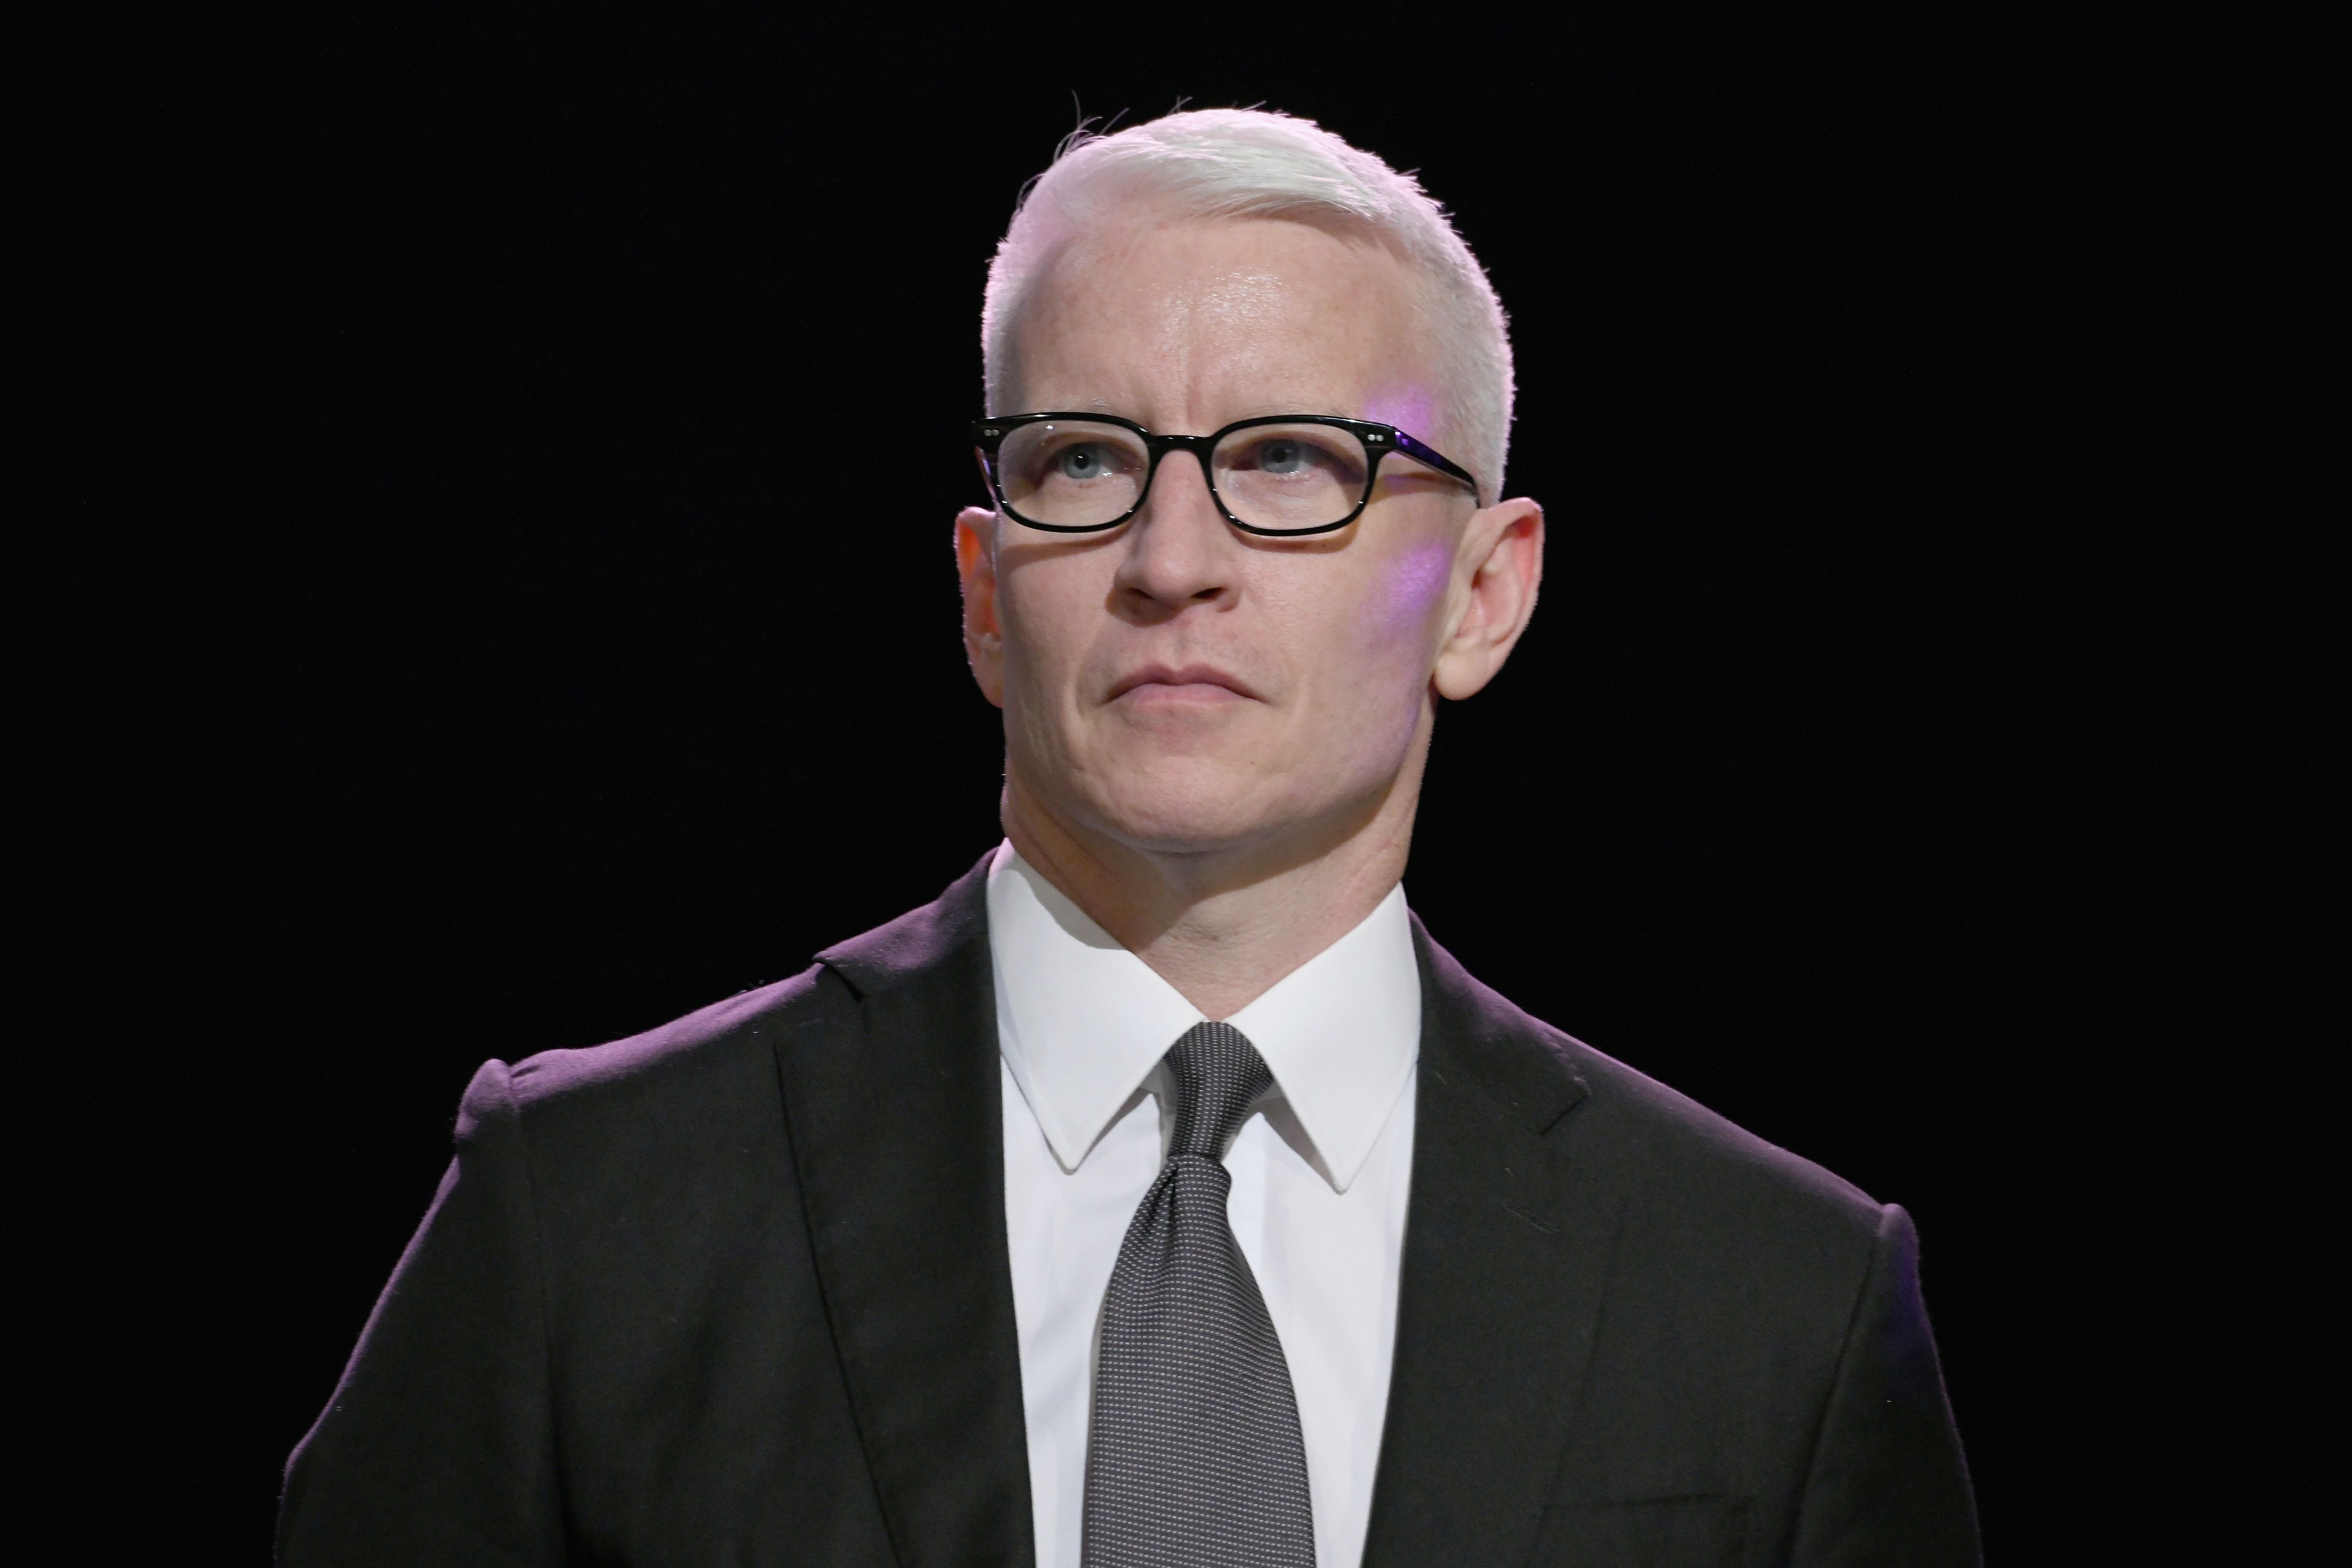 Anderson Cooper at the Sean Penn CORE Gala benefiting the organization formerly known as J/P HRO & its life-saving work across Haiti & the world at The Wiltern on January 5, 2019   Photo: Getty Images